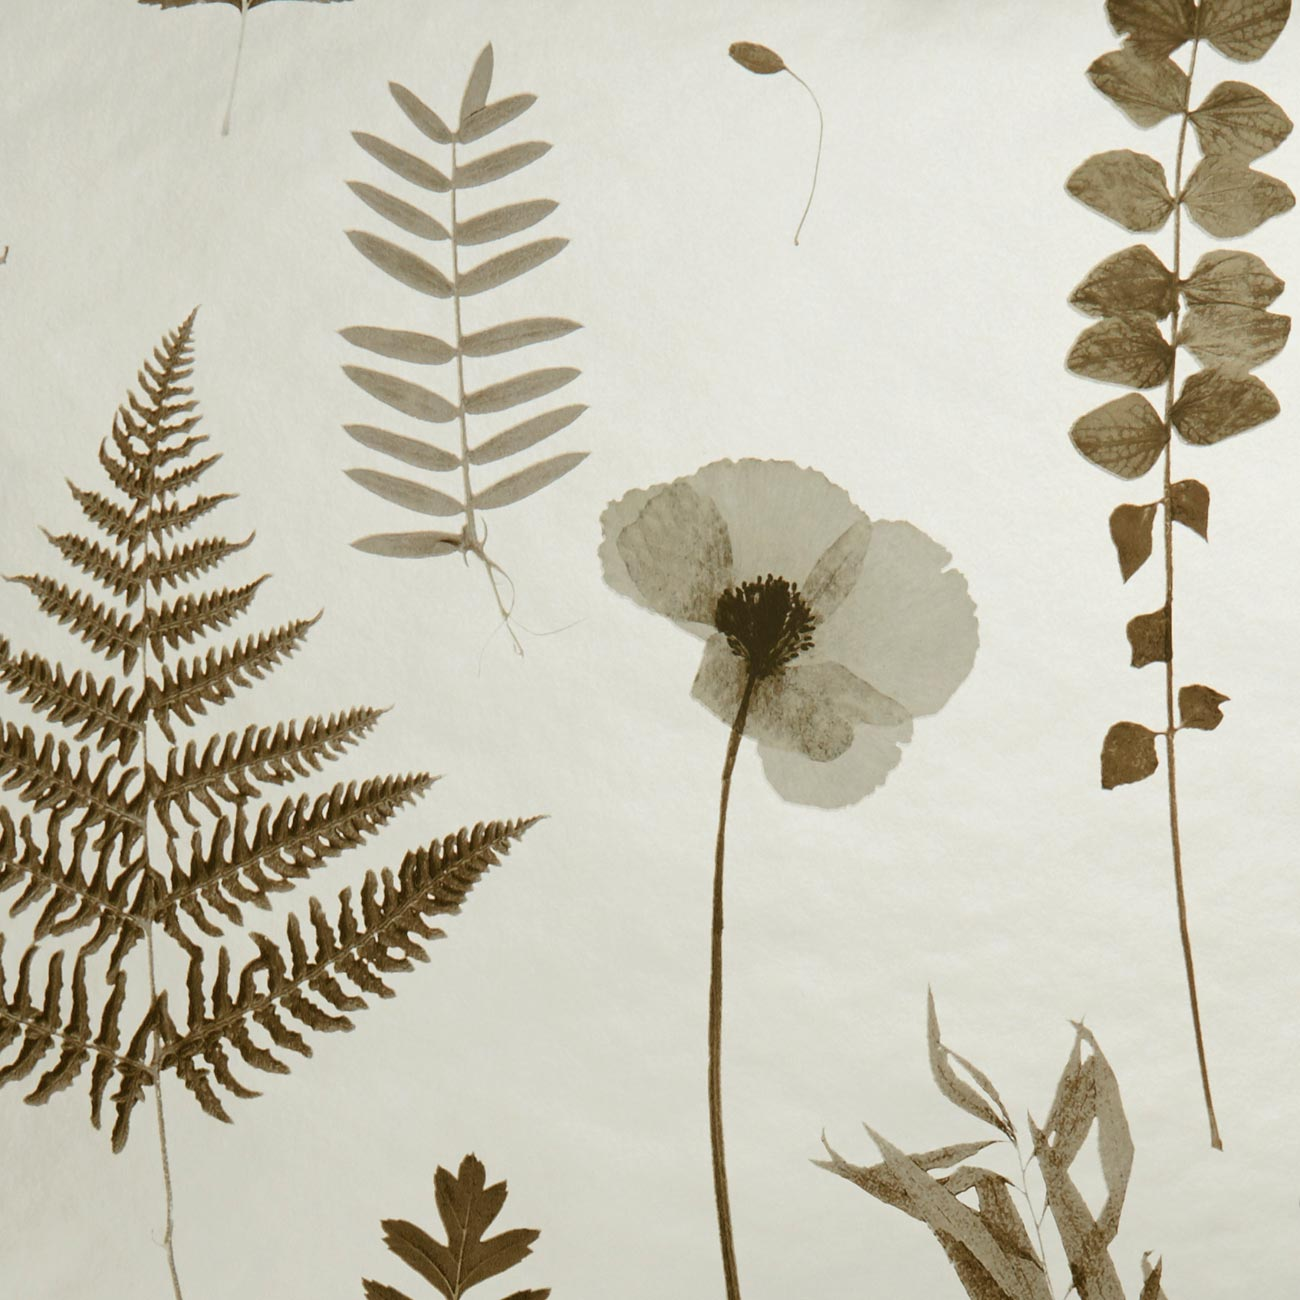 Herbarium Pressed Flower Effect Floral Wallpaper | Charcoal and Gold